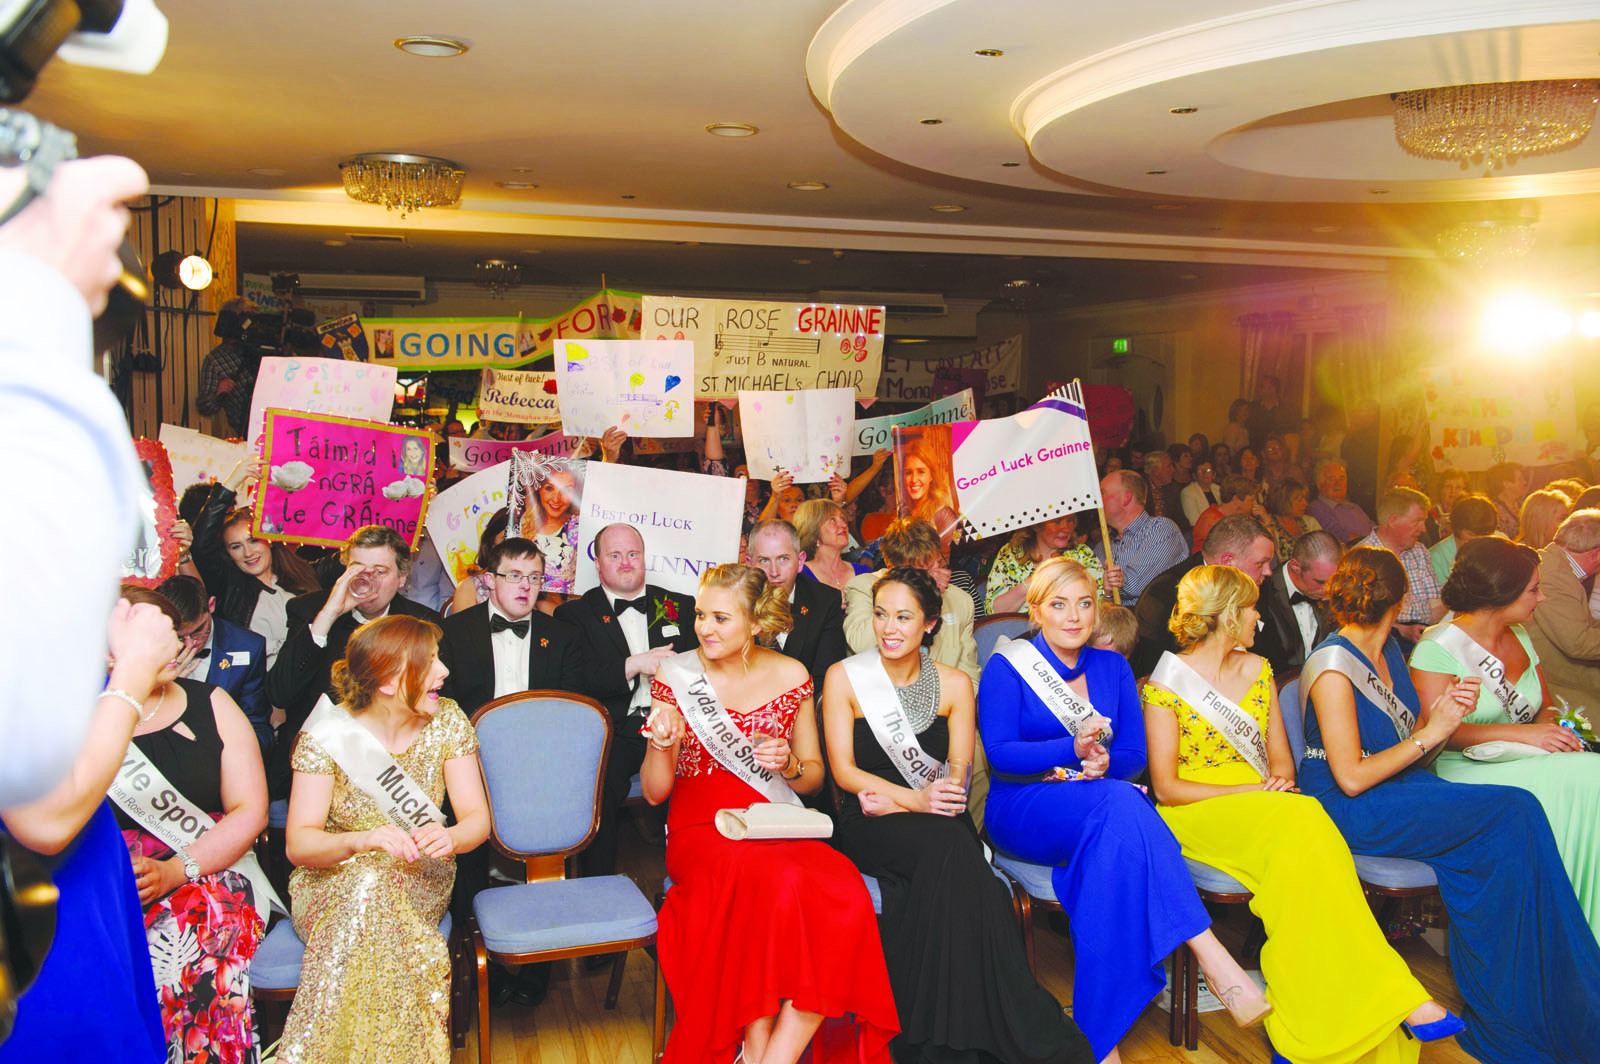 Some of the banners of support on display at the Monaghan Rose of Tralee selection night in The Four Seasons Hotel, Monaghan. ©Rory Geary/The Northern Standard